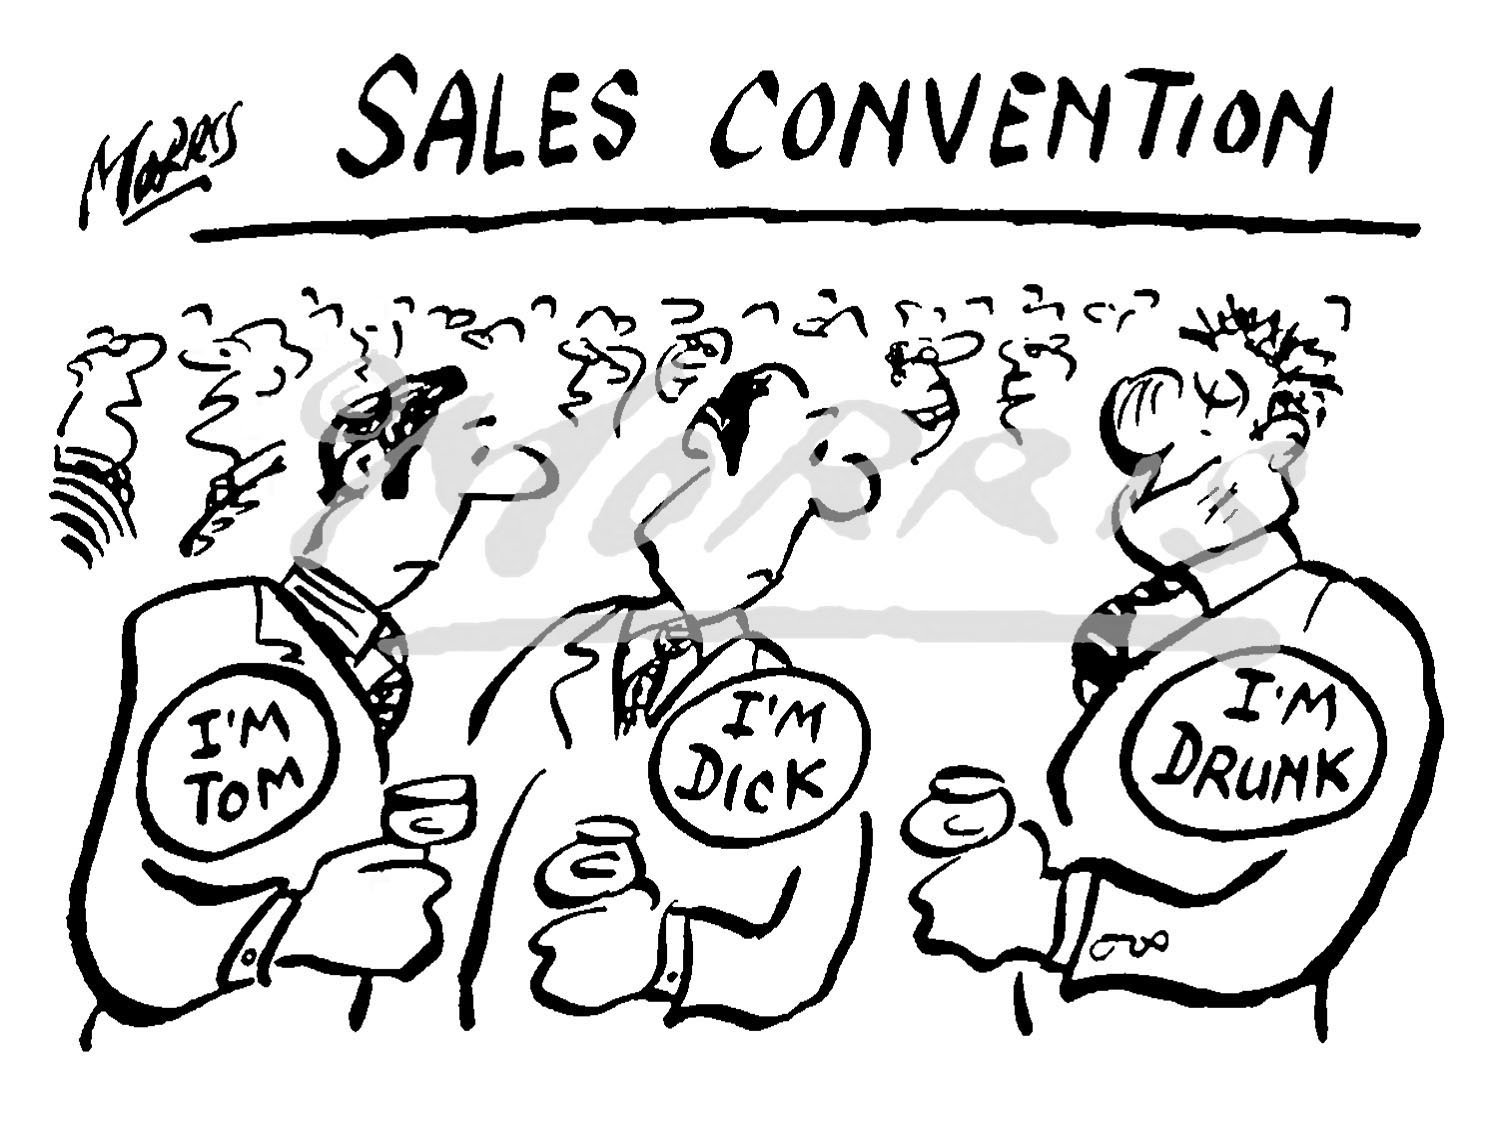 Sales convention business cartoon – Ref: 0239bw